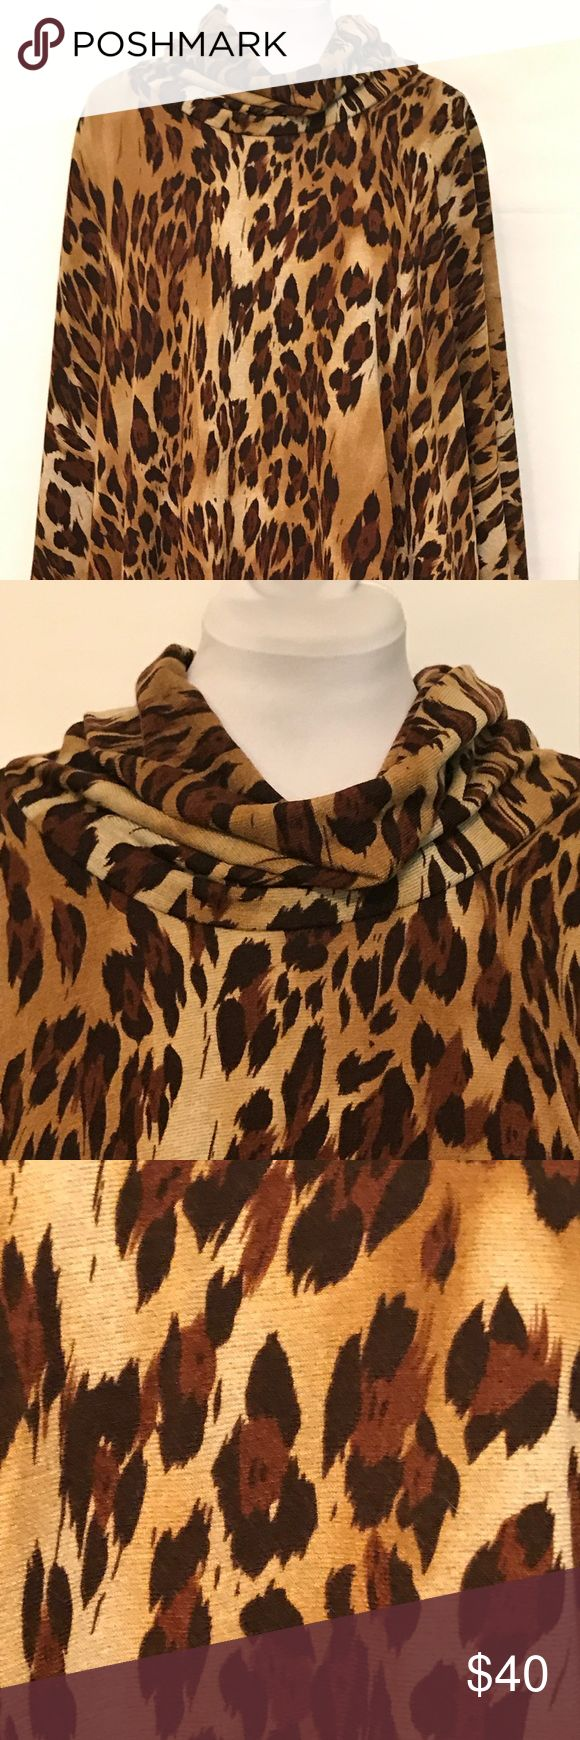 """Lapis Animal Print Cape Cowl Neckline Size Medium This is a cape by Lapis. Details include cowl neckline, medium length and animal print (jaguar?) Colors are brown, tan and cocoa. Fabric is 94% poly and 6% spandex. Size Medium. Length is 28"""", sleeve length is 25"""", and width measures 46"""". All color descriptions and measurements are approximate. In excellent condition. Lapis Jackets & Coats Capes"""